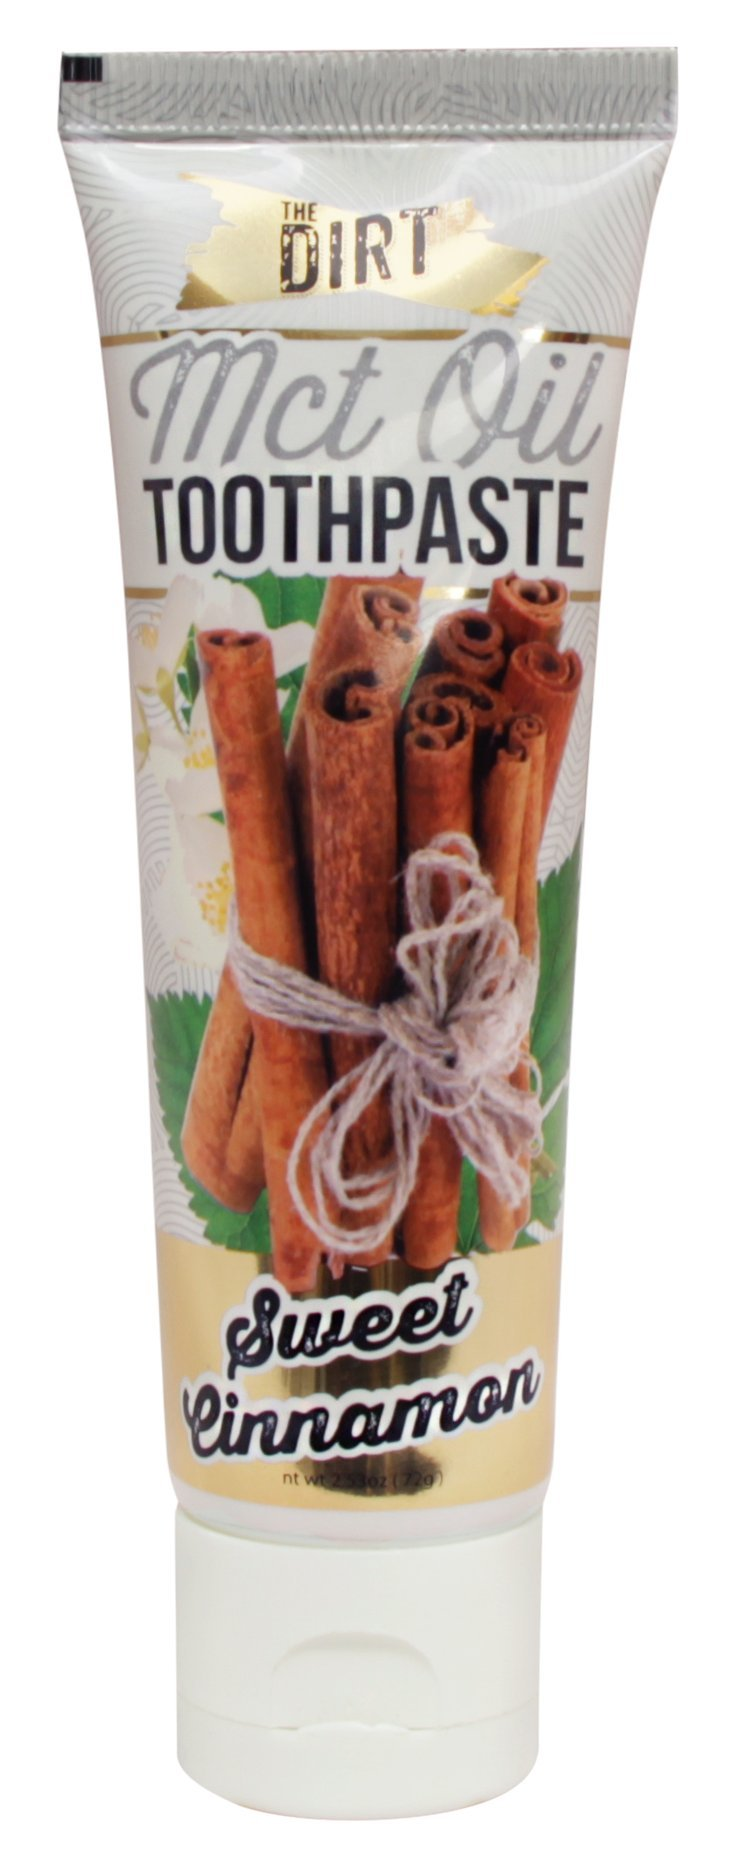 The Dirt Natural Organic Fluoride Free Toothpaste with MCT Coconut Oil (72g) Sweet Cinnamon